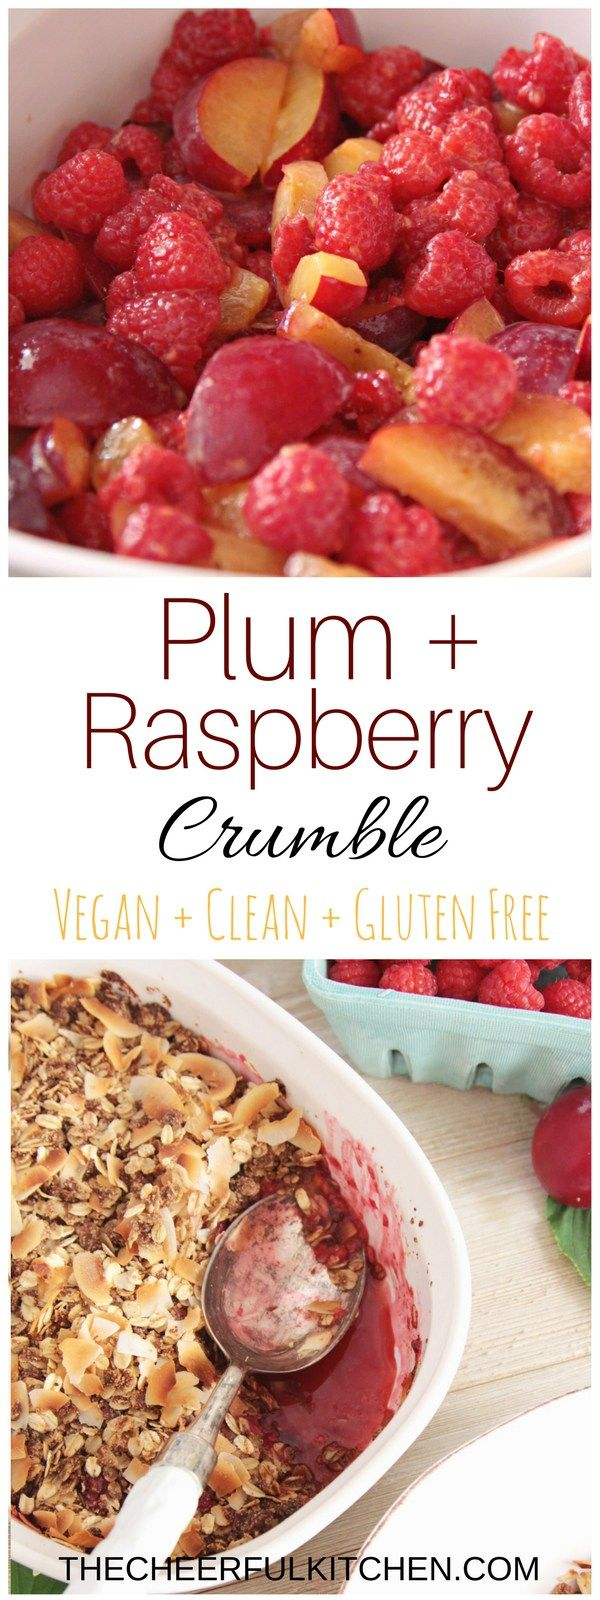 The Cheerful Kitchen / This Vegan Dessert, Clean Eating Recipe, Gluten Free Recipe for Plum + Raspberry Crumble is delicious with a scoop of dairy free ice cream! Get the recipe now!